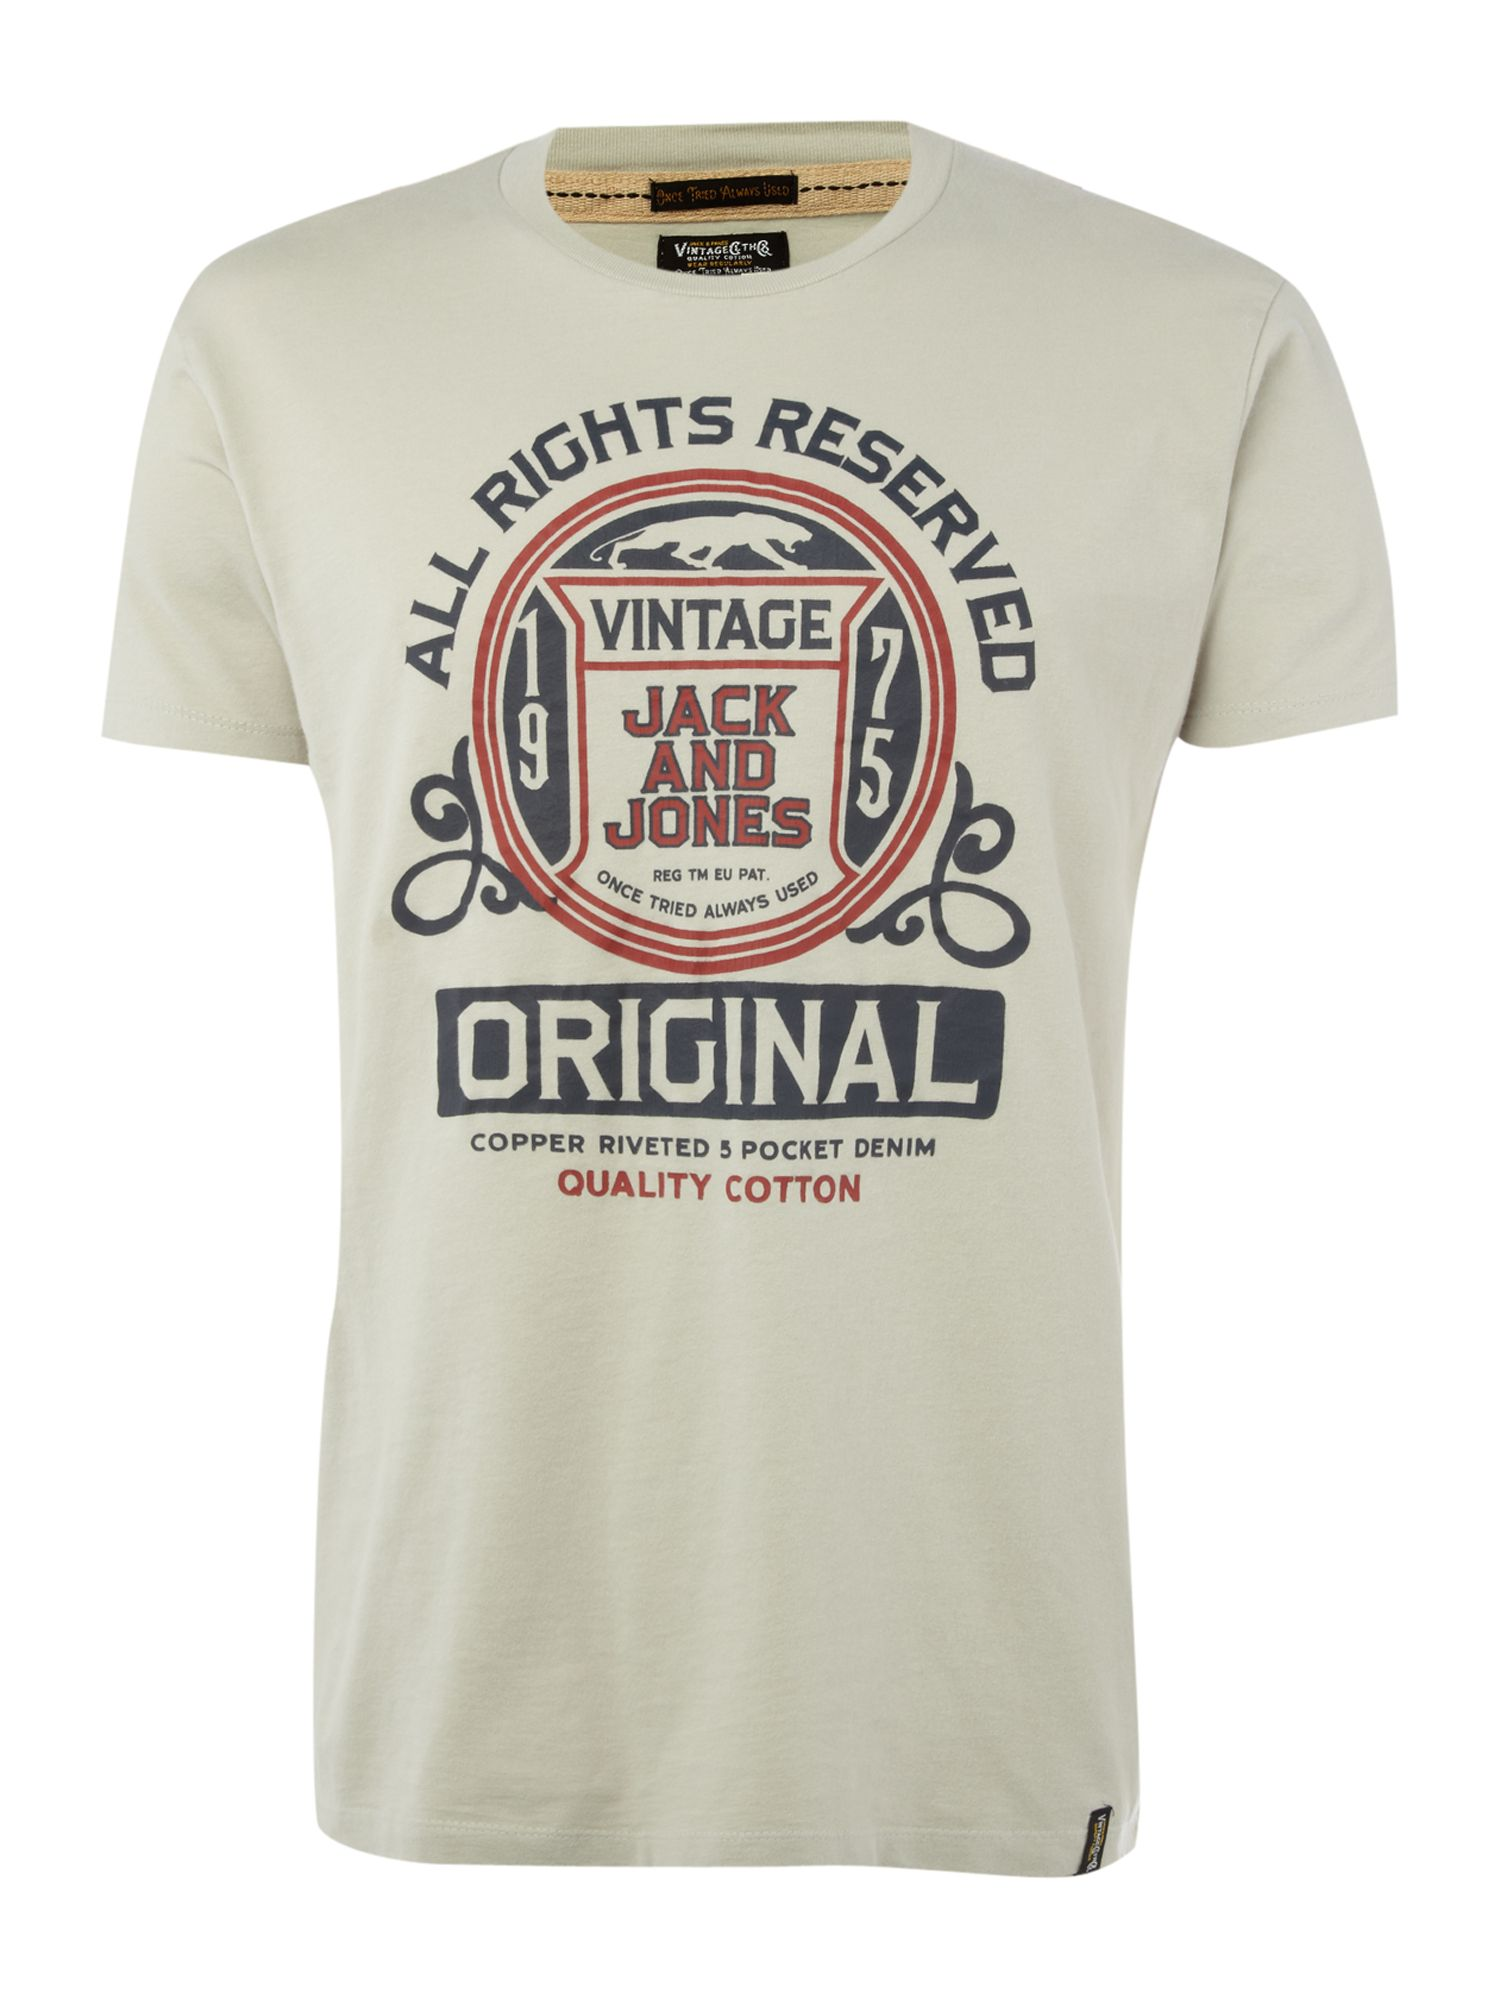 Jack & Jones Vintage Short-sleeved printed T-shirt - Navy product image